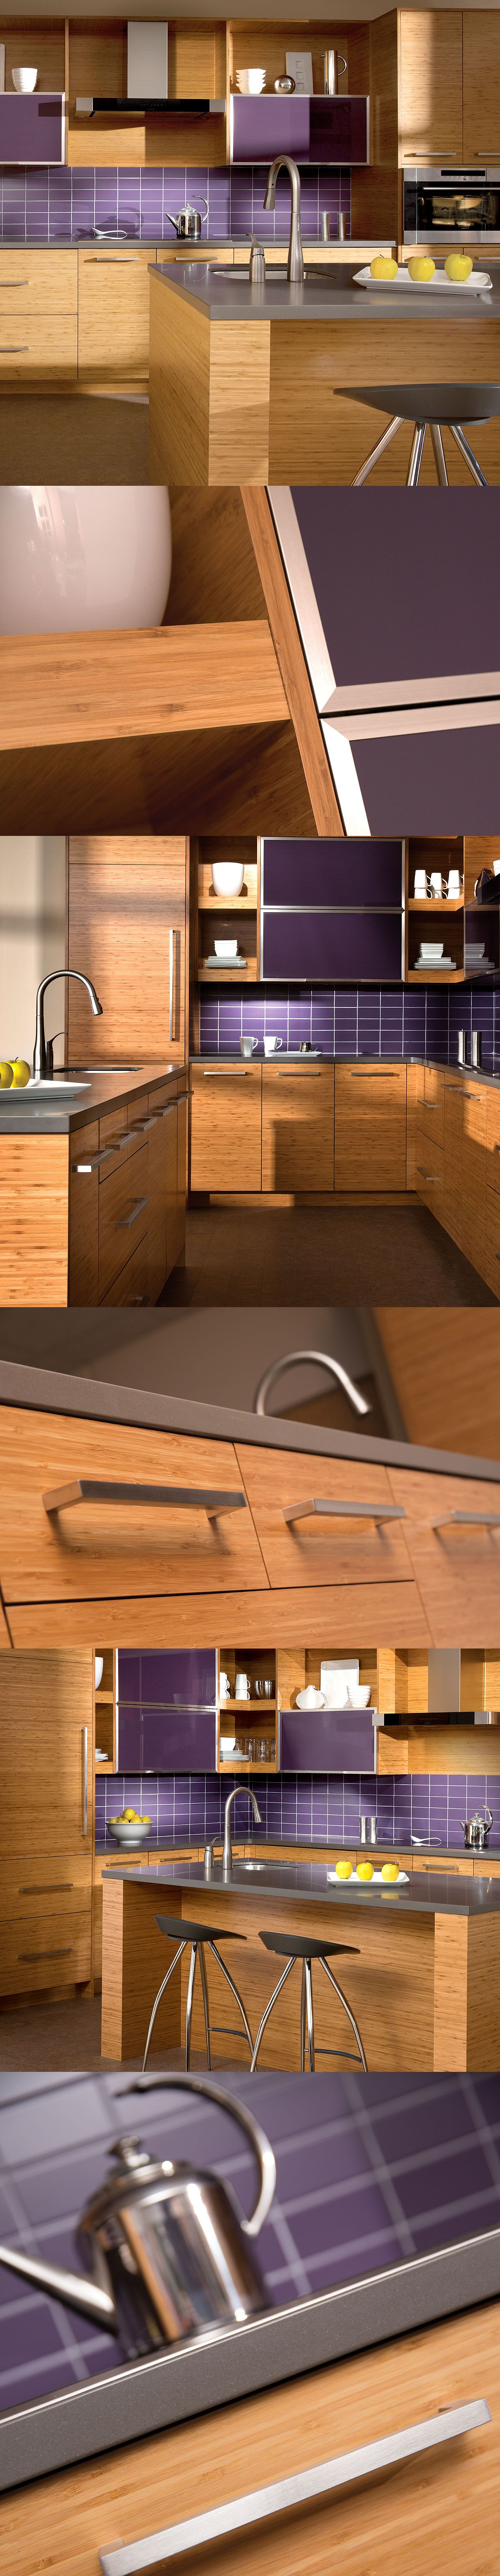 Best Contemporary Kitchen Design With Bamboo Cabinets Dura 400 x 300